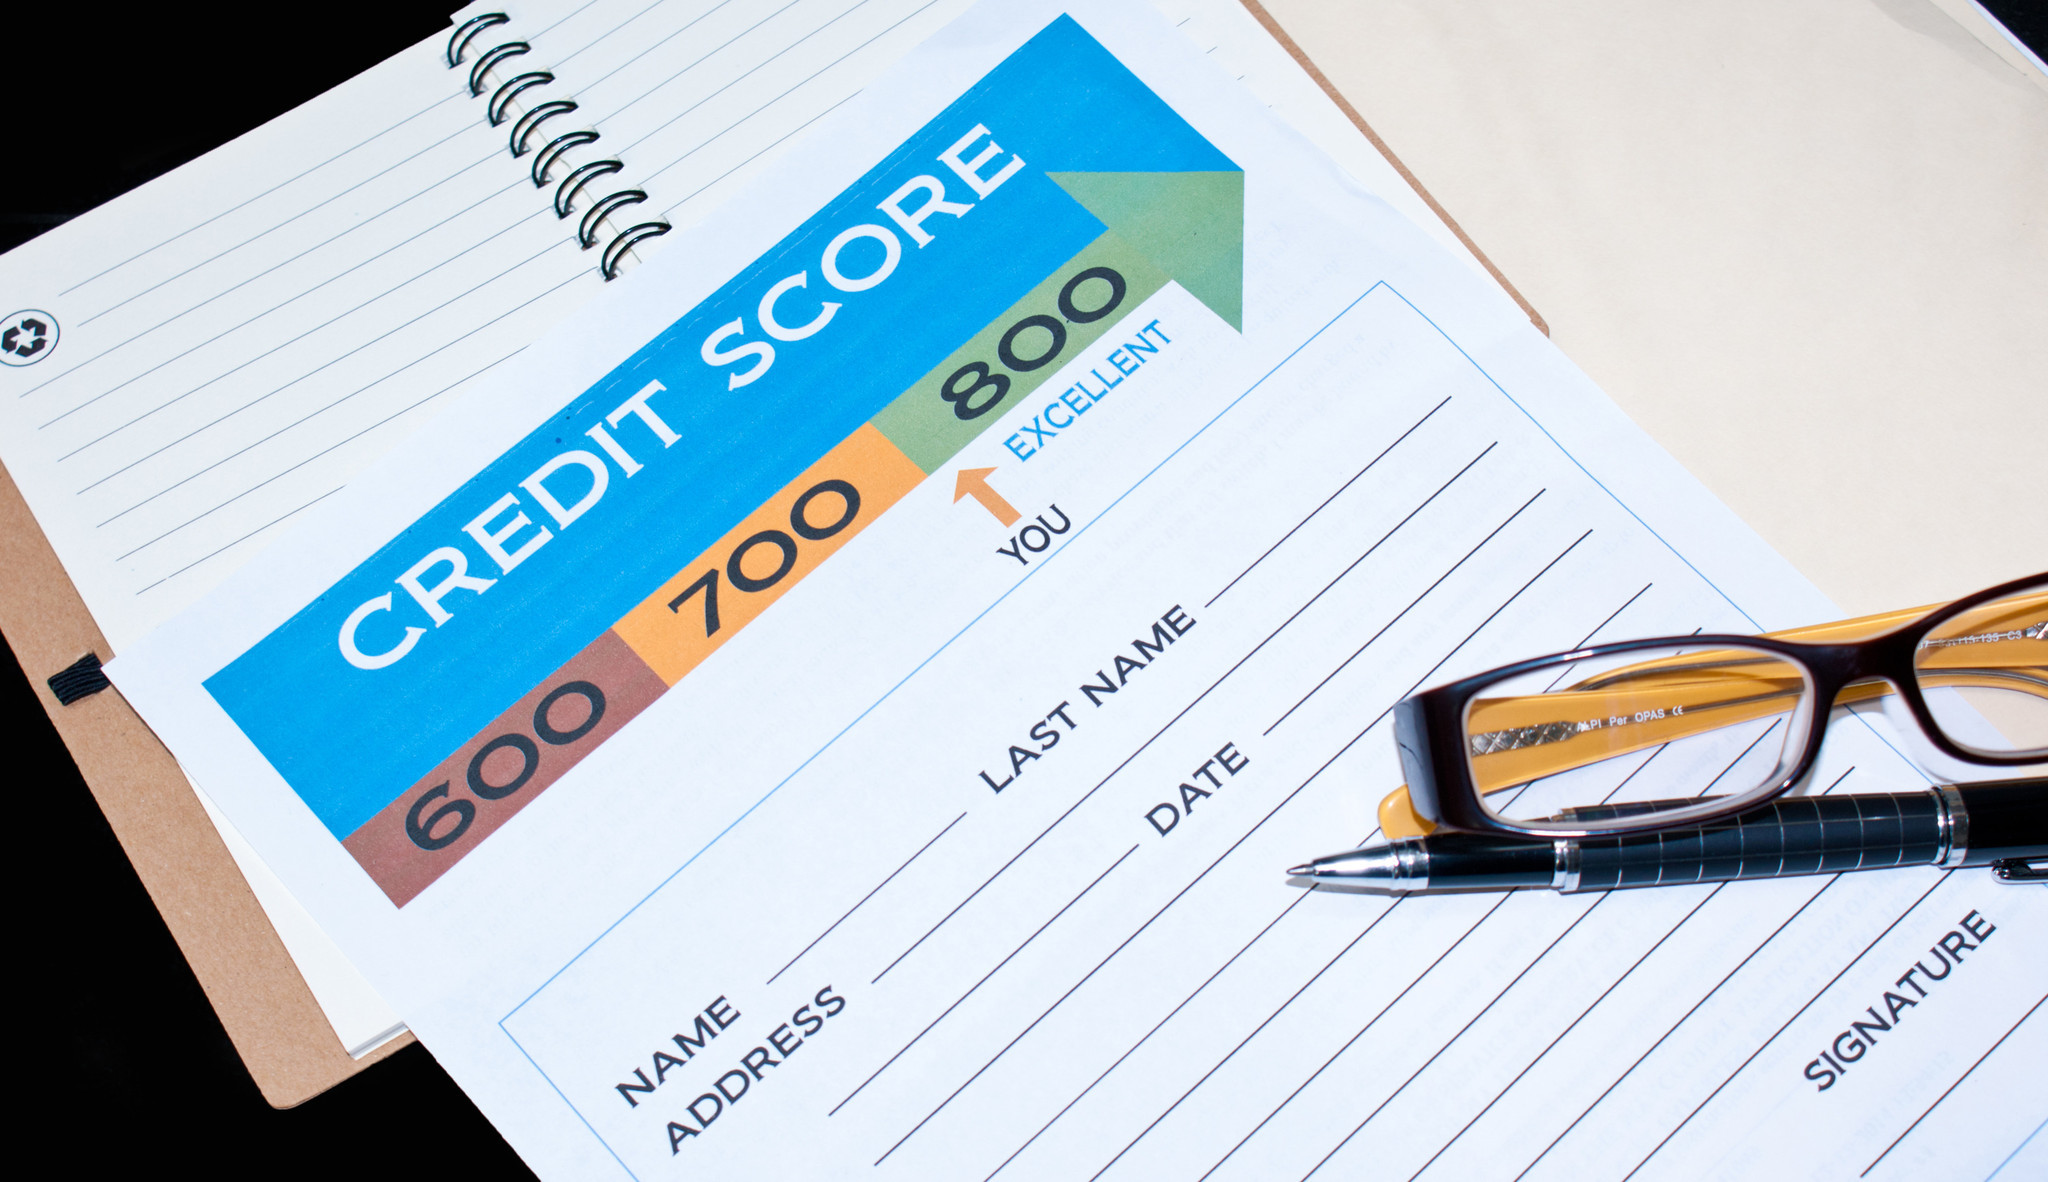 Consumers confused on credit scores, survey says